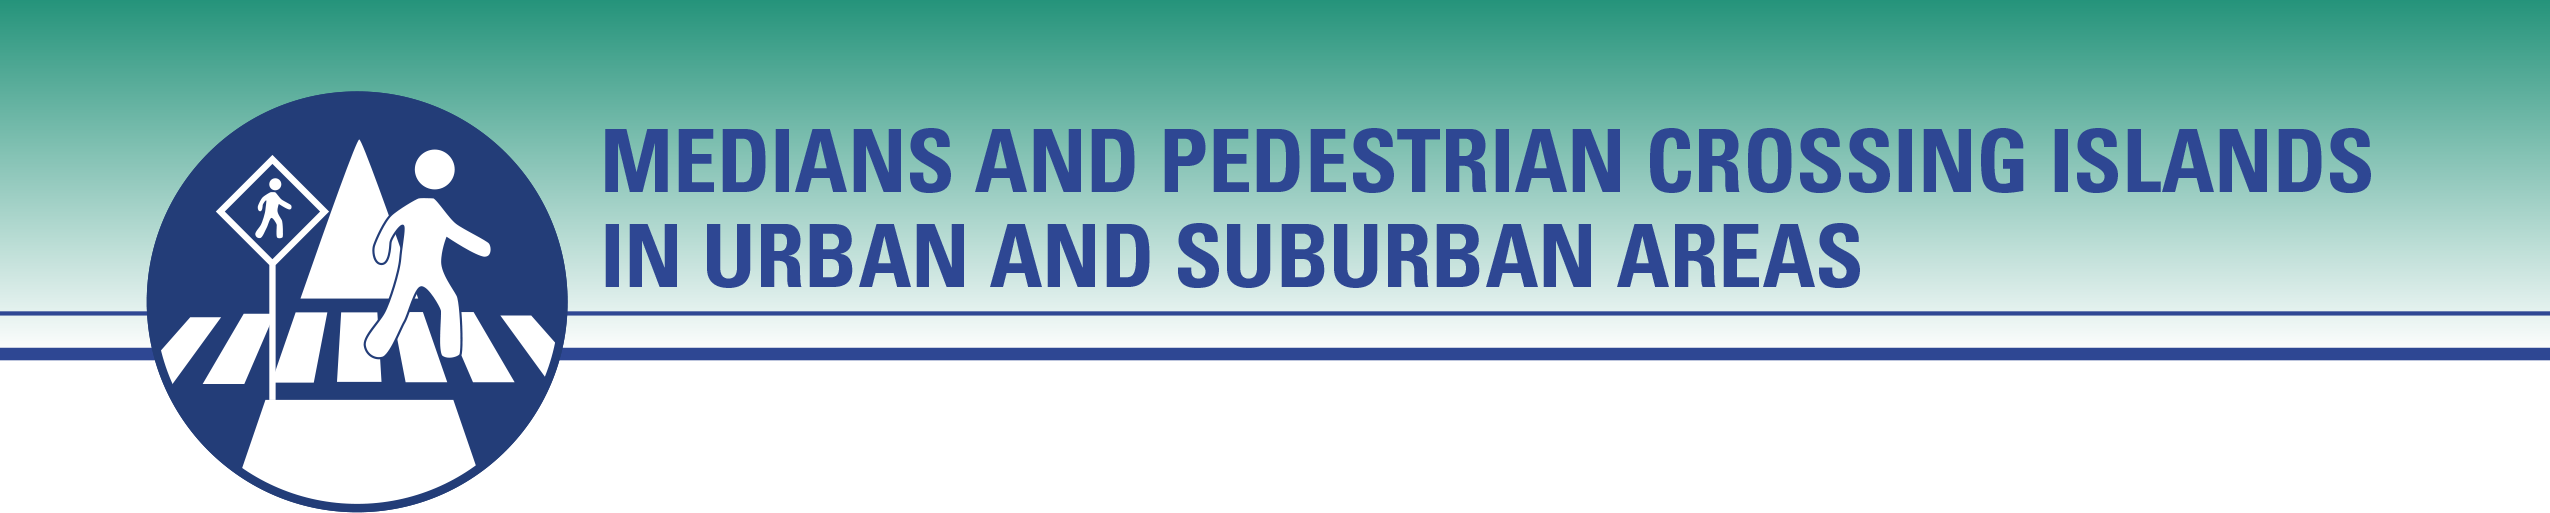 Medians and Pedestrian Crossing Islands in Urban and Suburban Areas